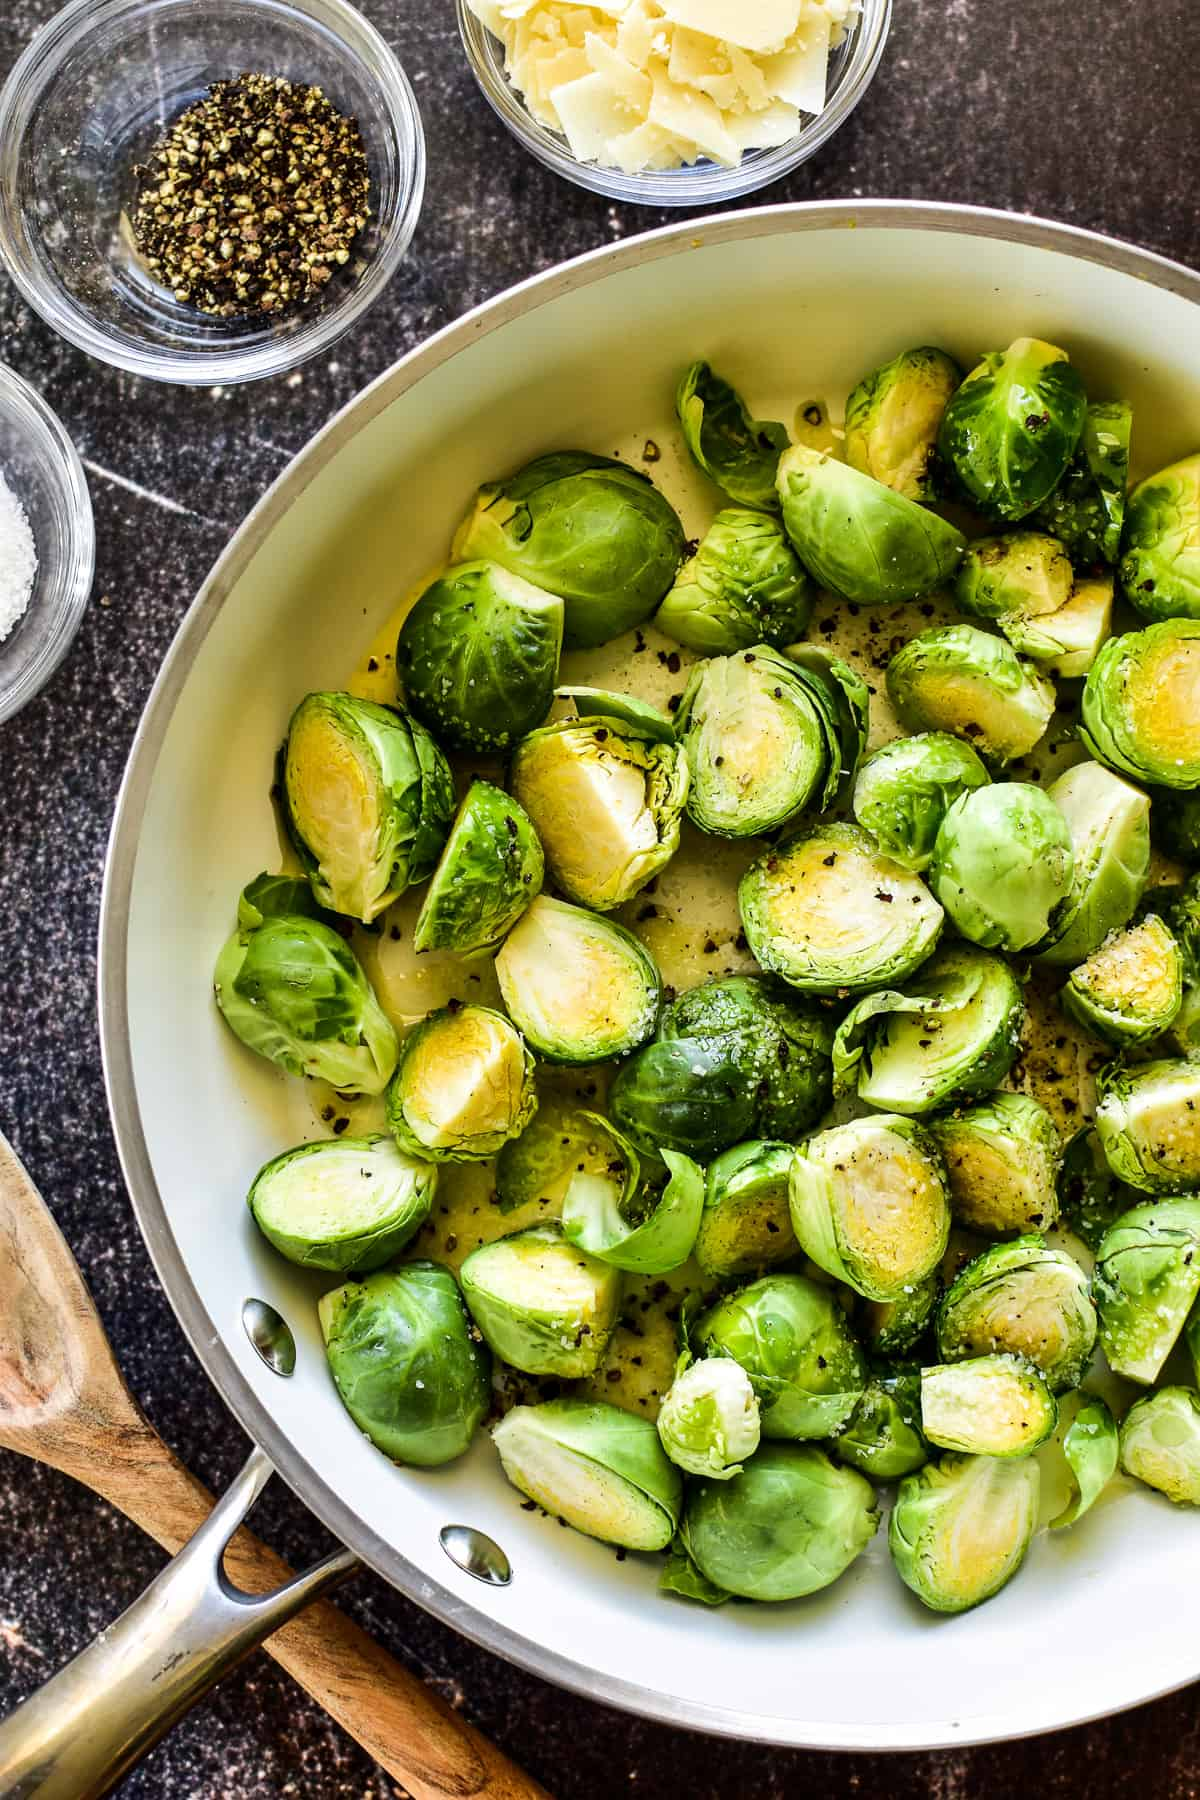 Sauteed Brussel Sprouts ingredients combined in skillet